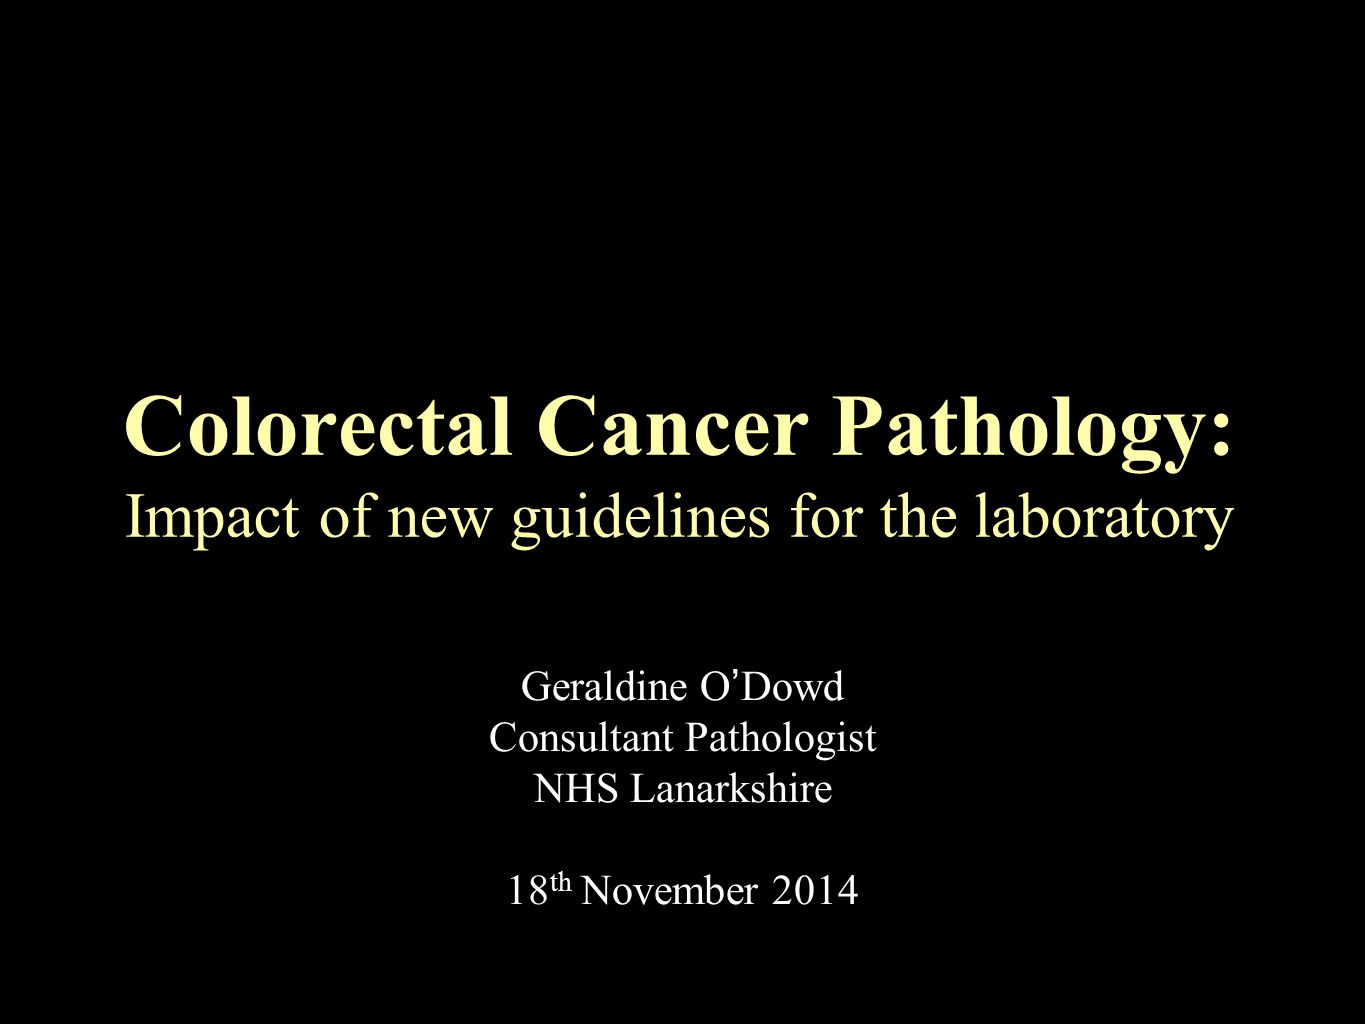 Geraldine O'Dowd Consultant Pathologist NHS Lanarkshire 18 th November 2014 Colorectal Cancer Pathology: Impact of new guidelines for the laboratory